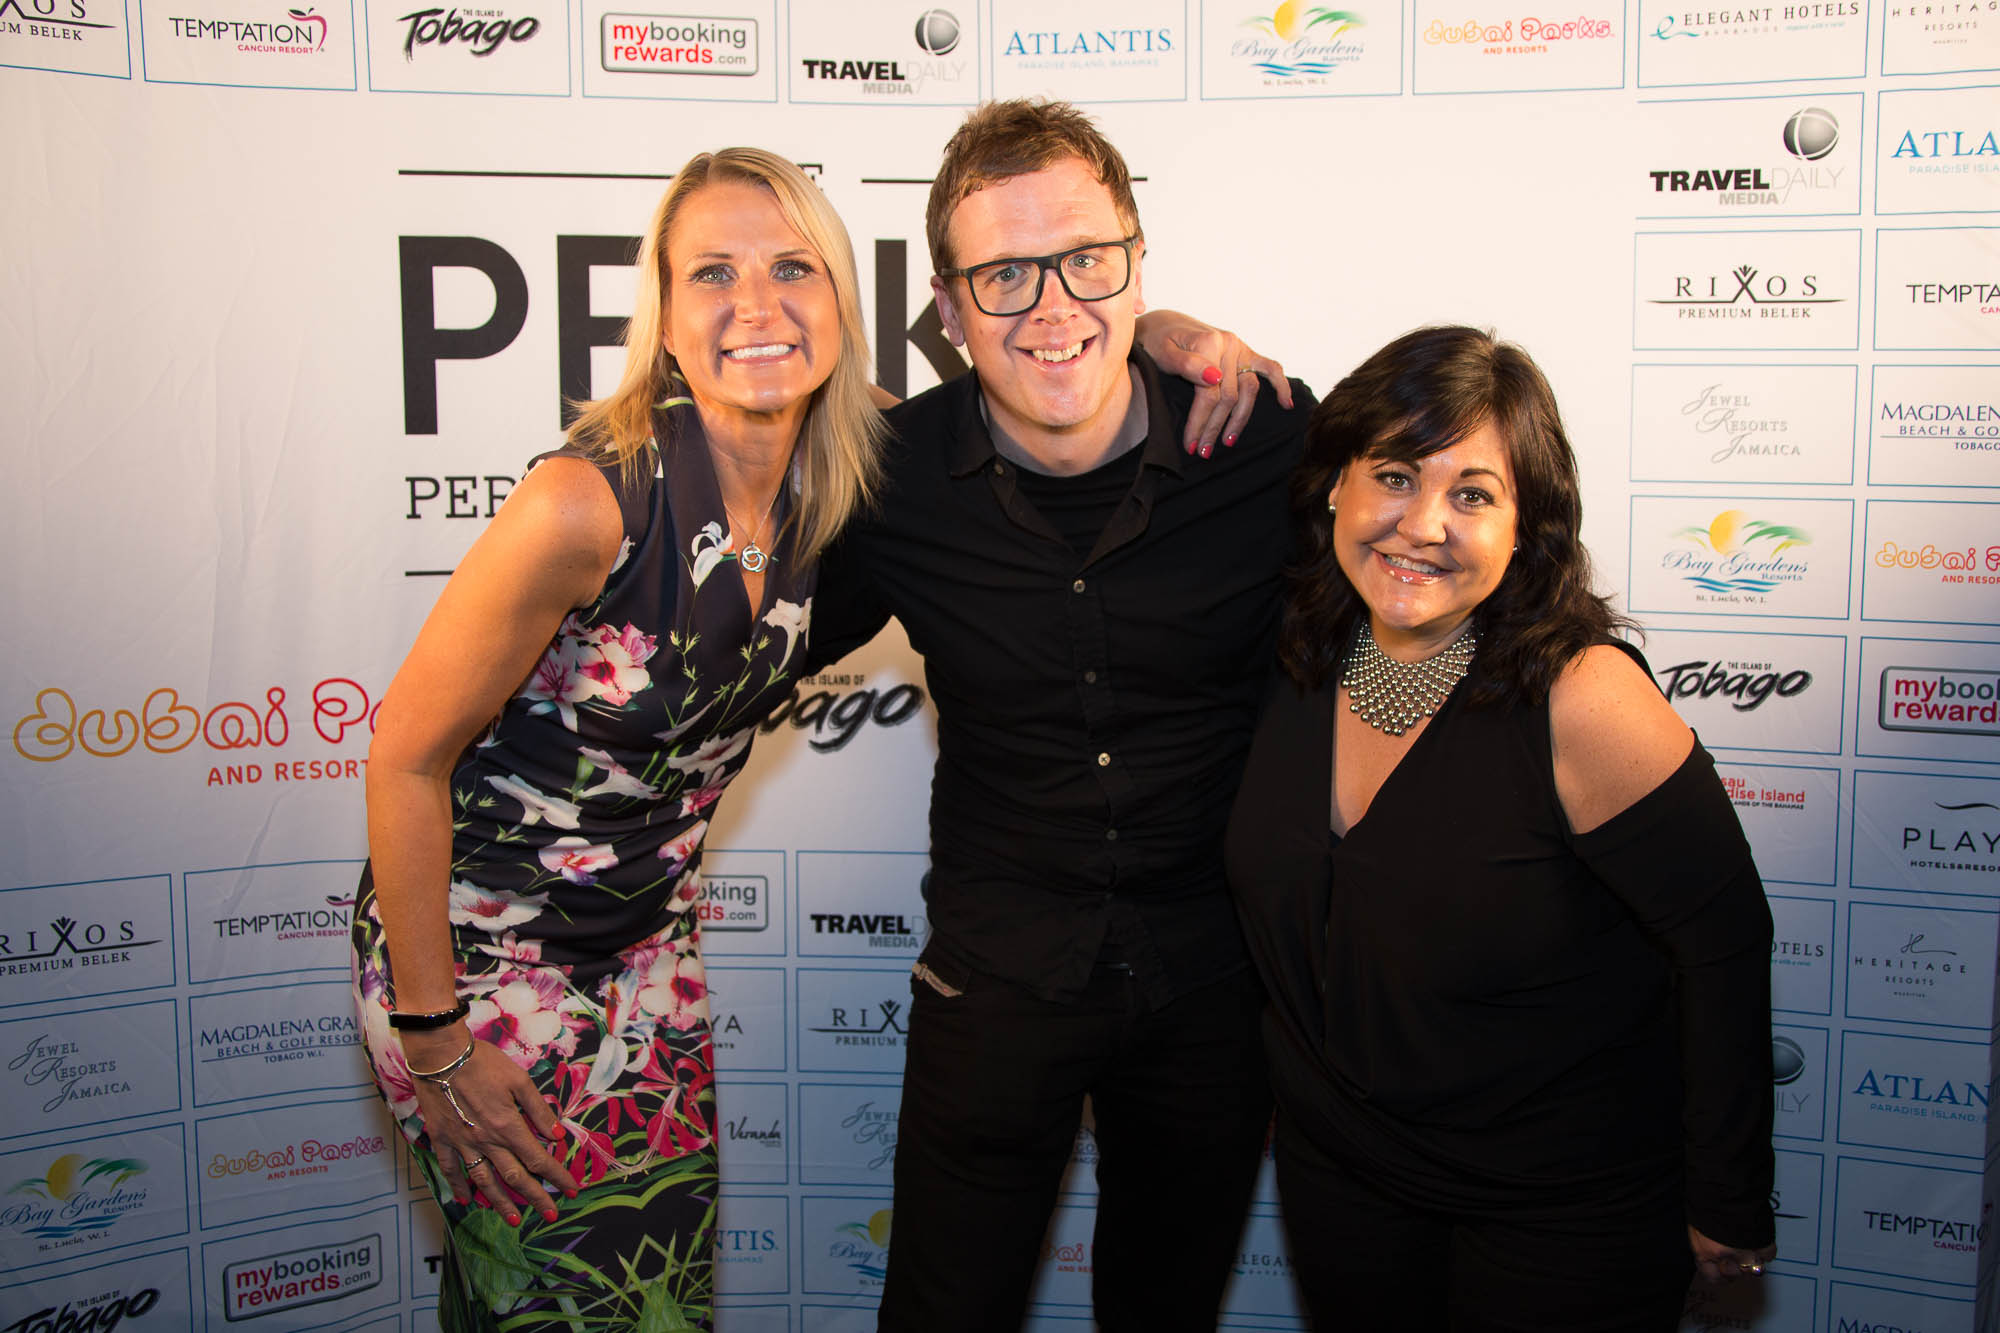 Peaks Performance Awards 2017 - London - image 1